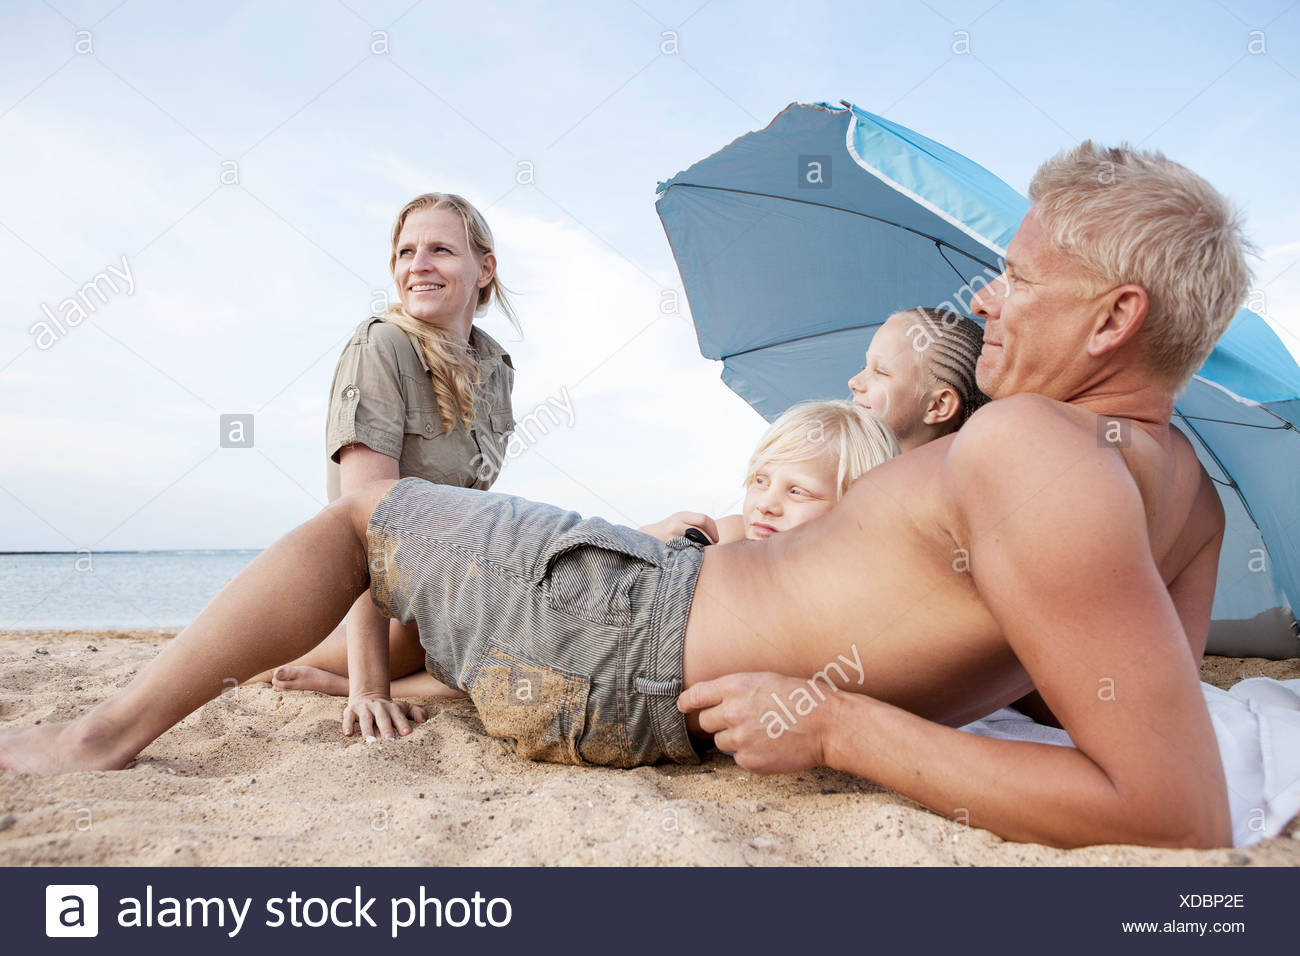 Family with two children relaxing on beach - Stock Image